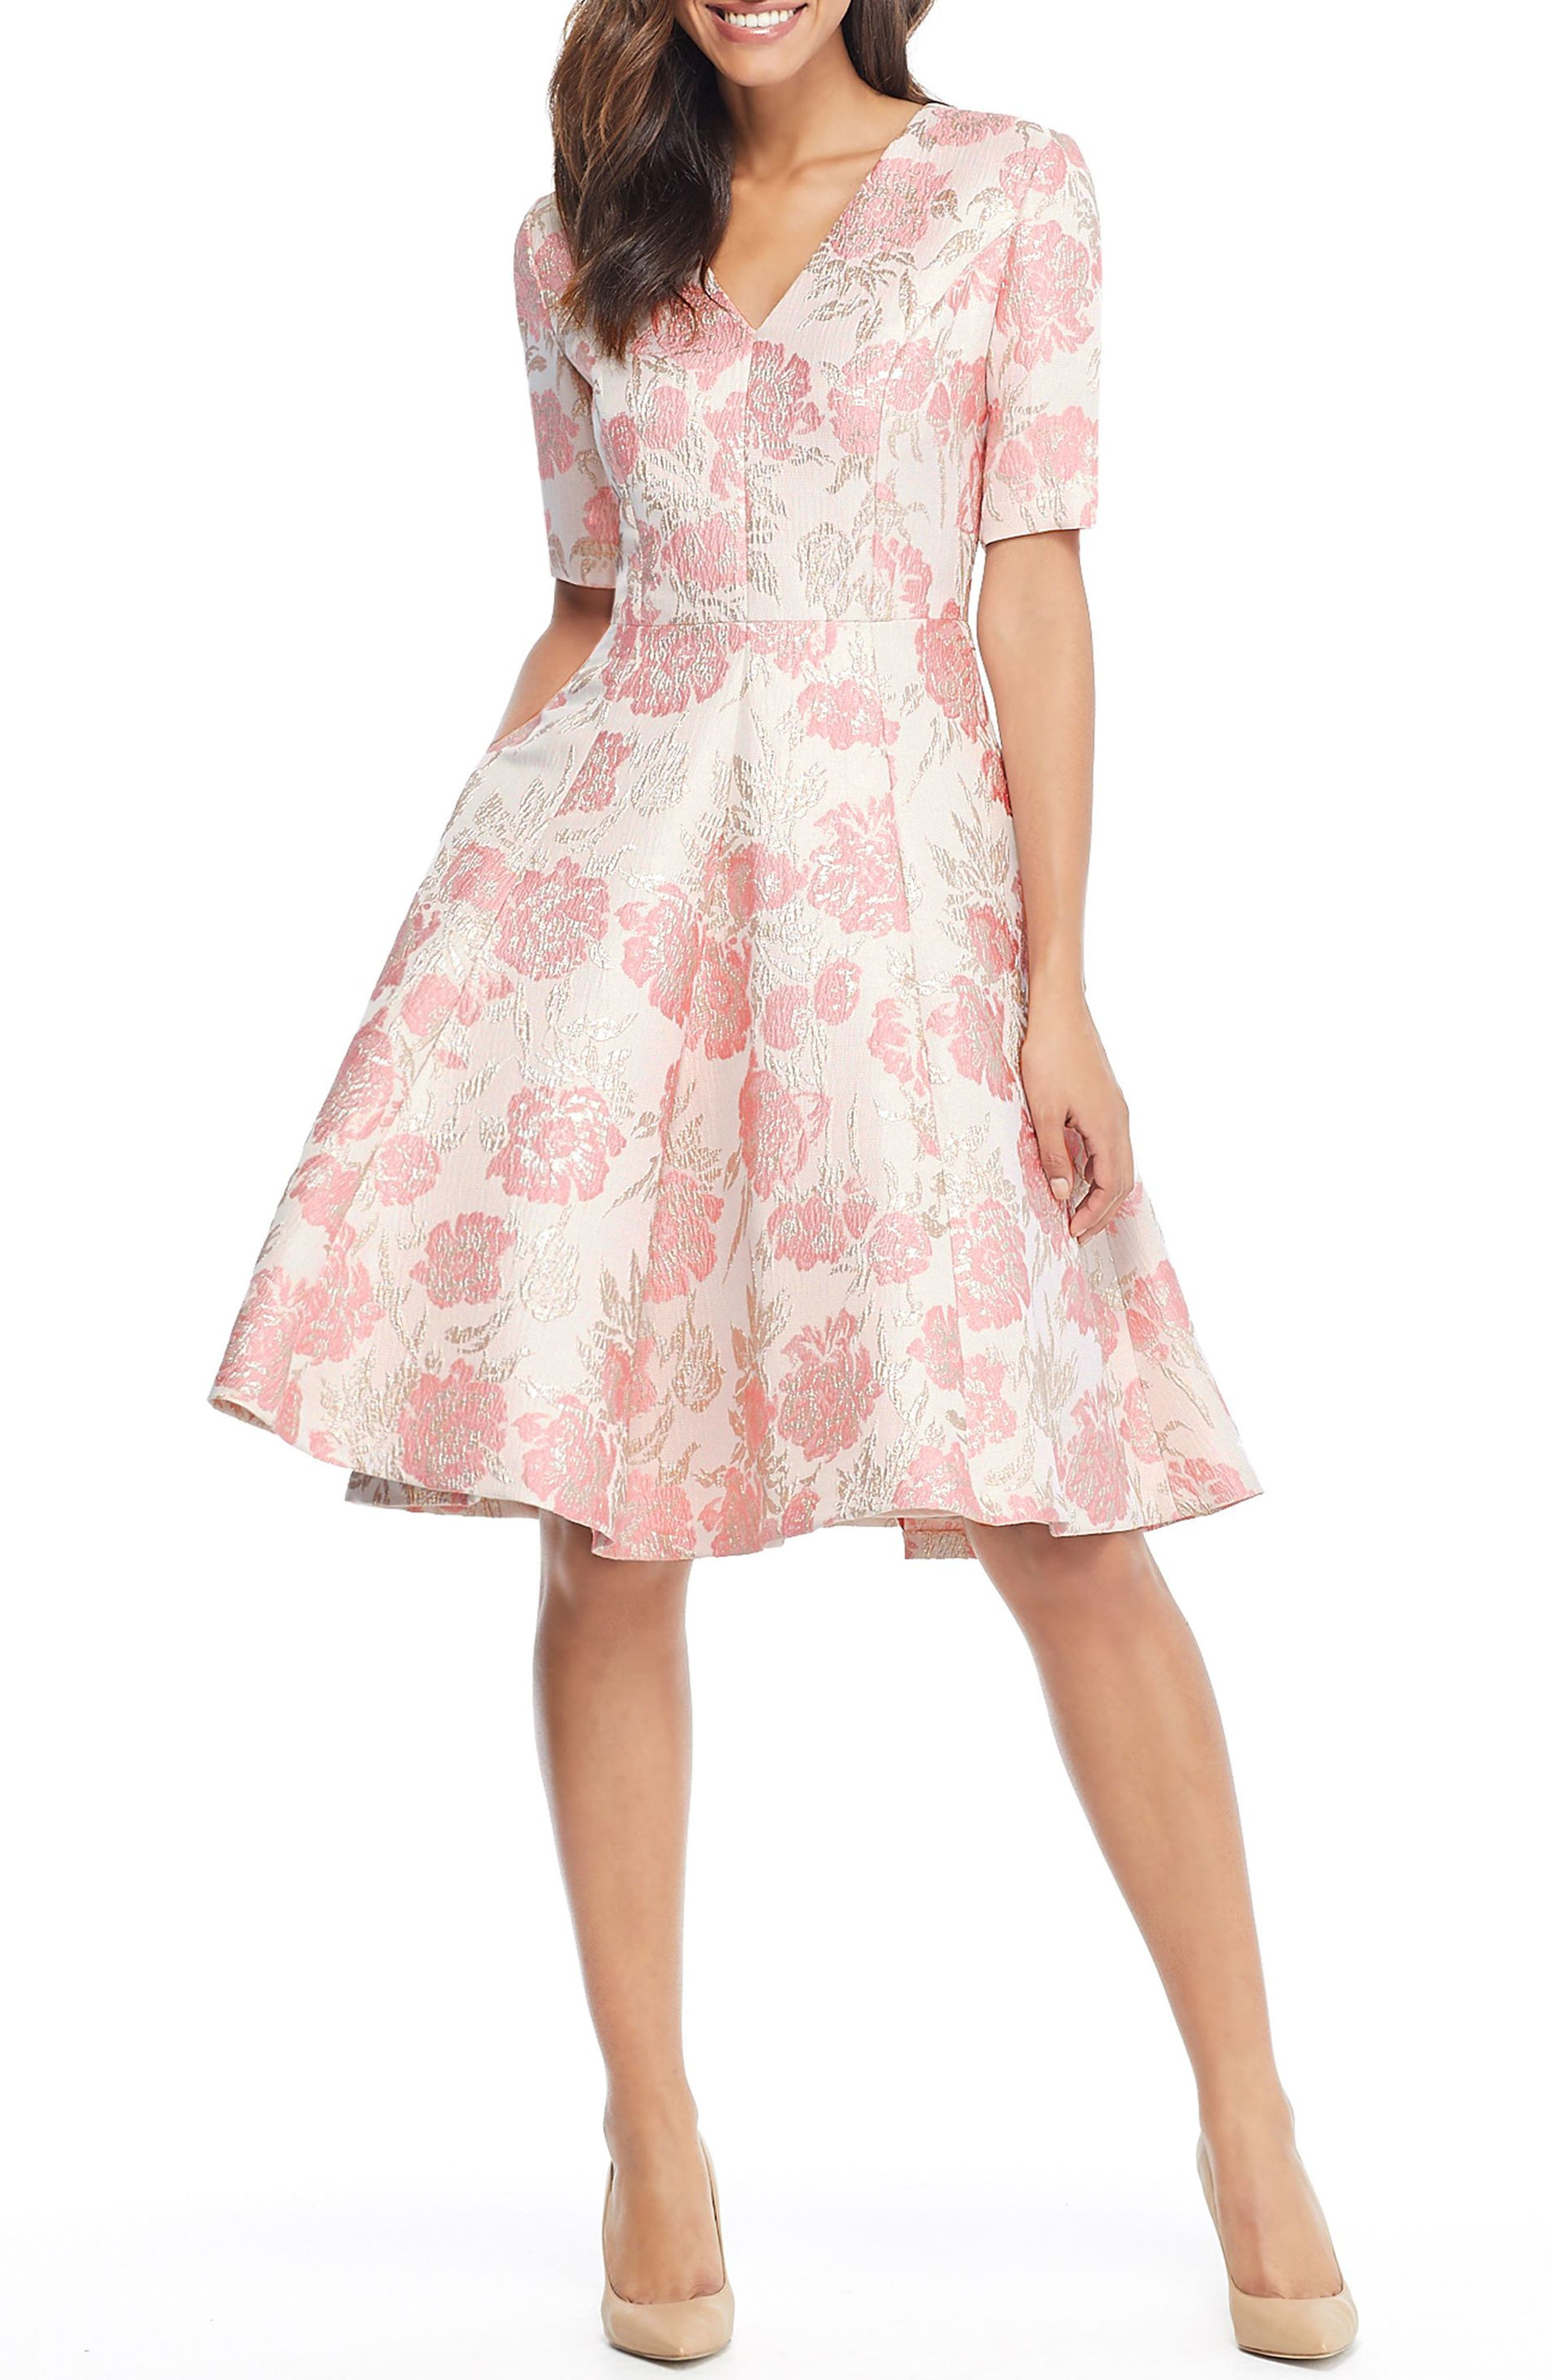 Gal Meets Glam Collection Adair Pink Passion Rose Jacquard Fit & Flare Dress, Pink